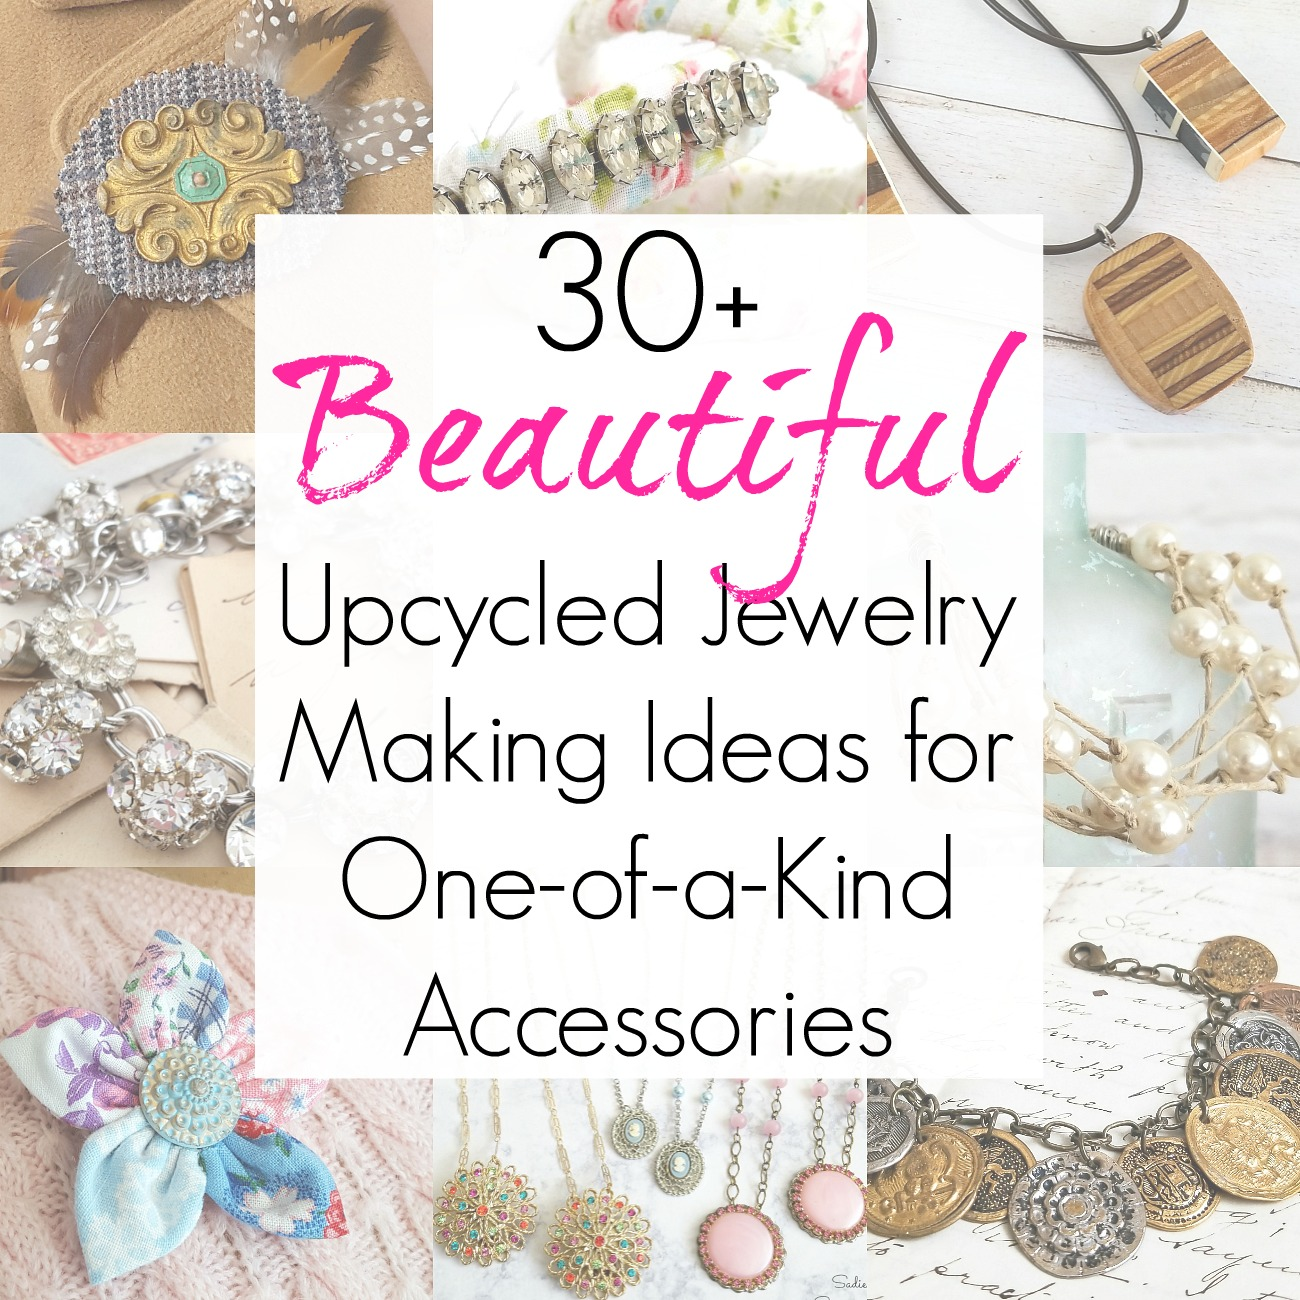 Upcycled Jewelry and Jewelry Making Ideas with broken jewelry and one of a kind jewelry